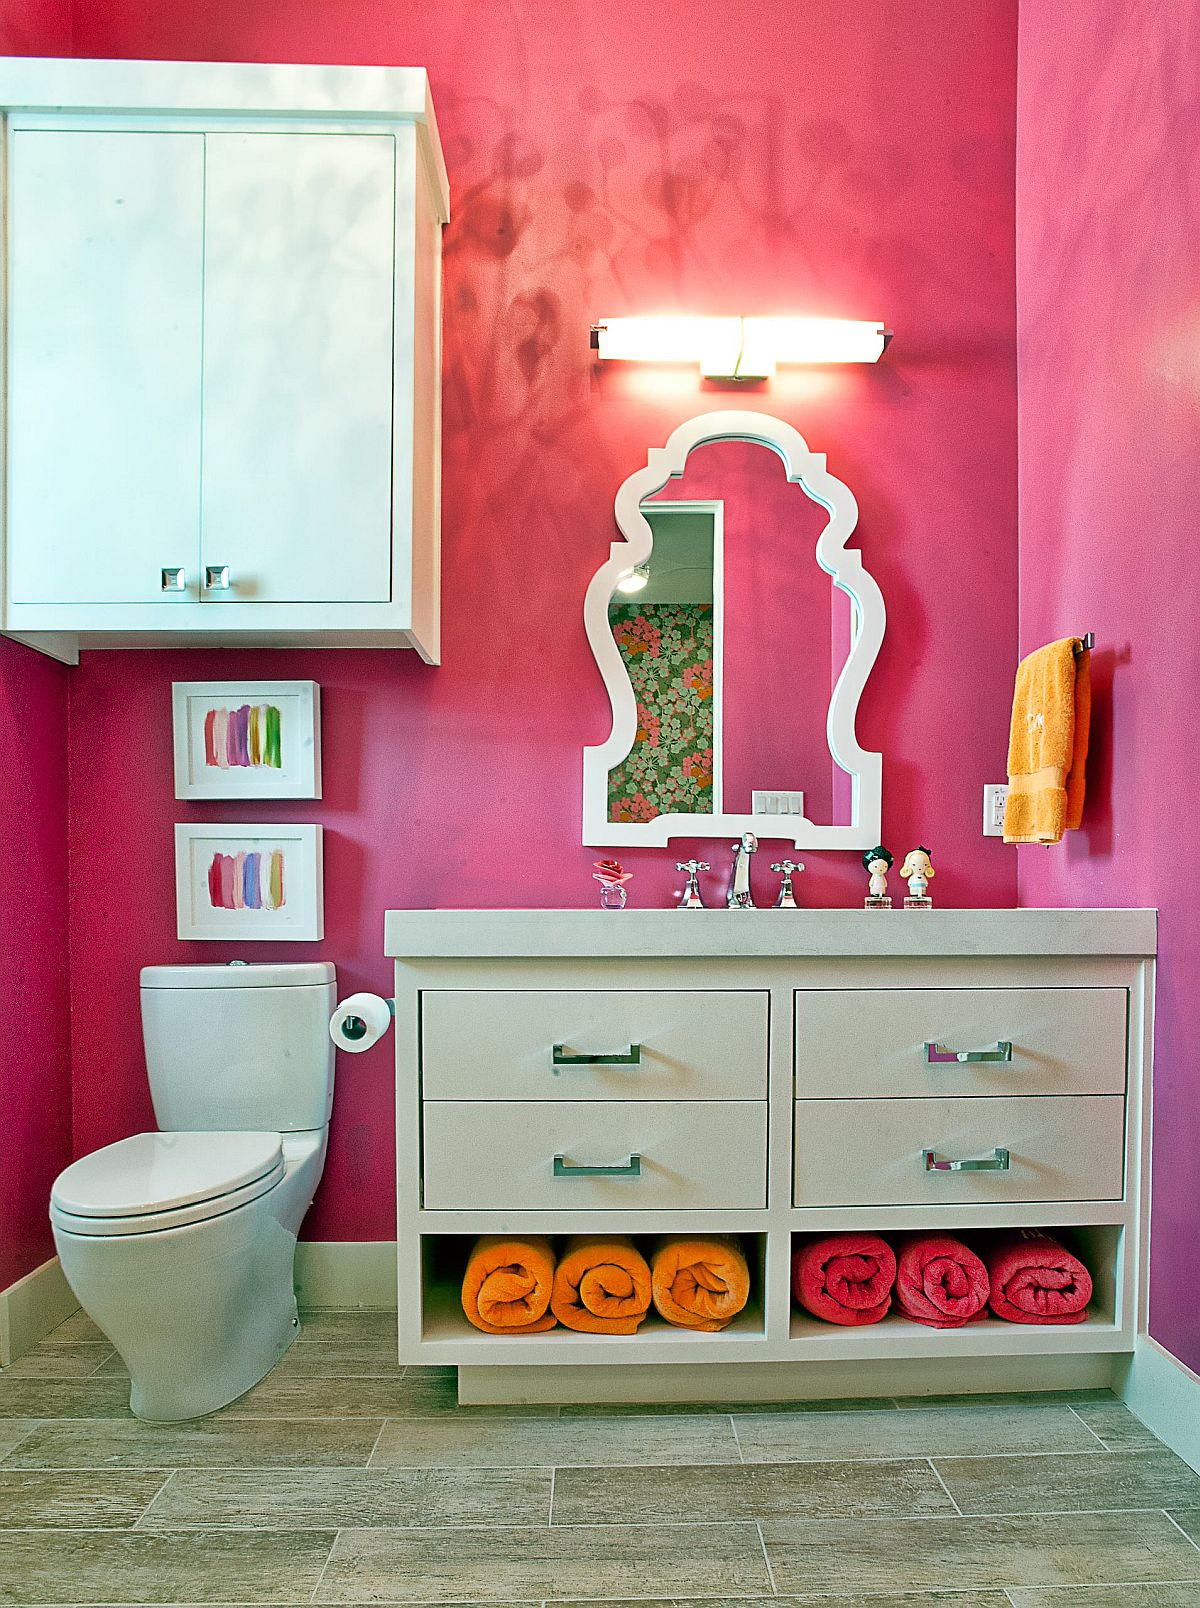 Fuchsia brings brightness and eclectic charm to this bathroom